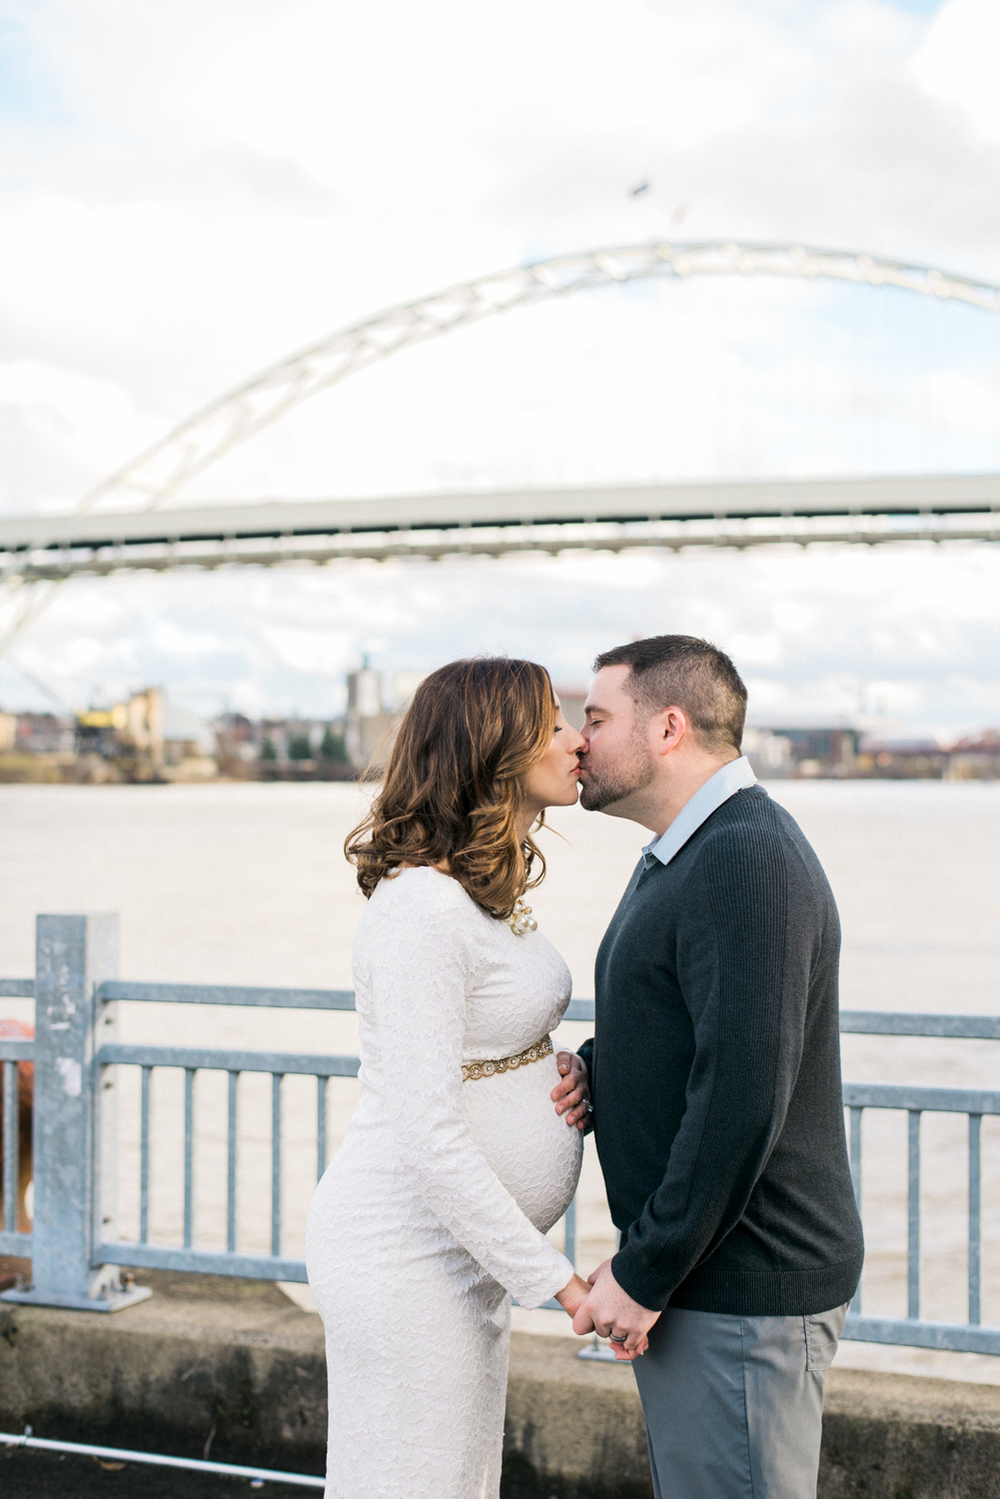 waterfront-portland-maternity-photography-fremont-bridge-urban-city-shelley-marie-photo-3